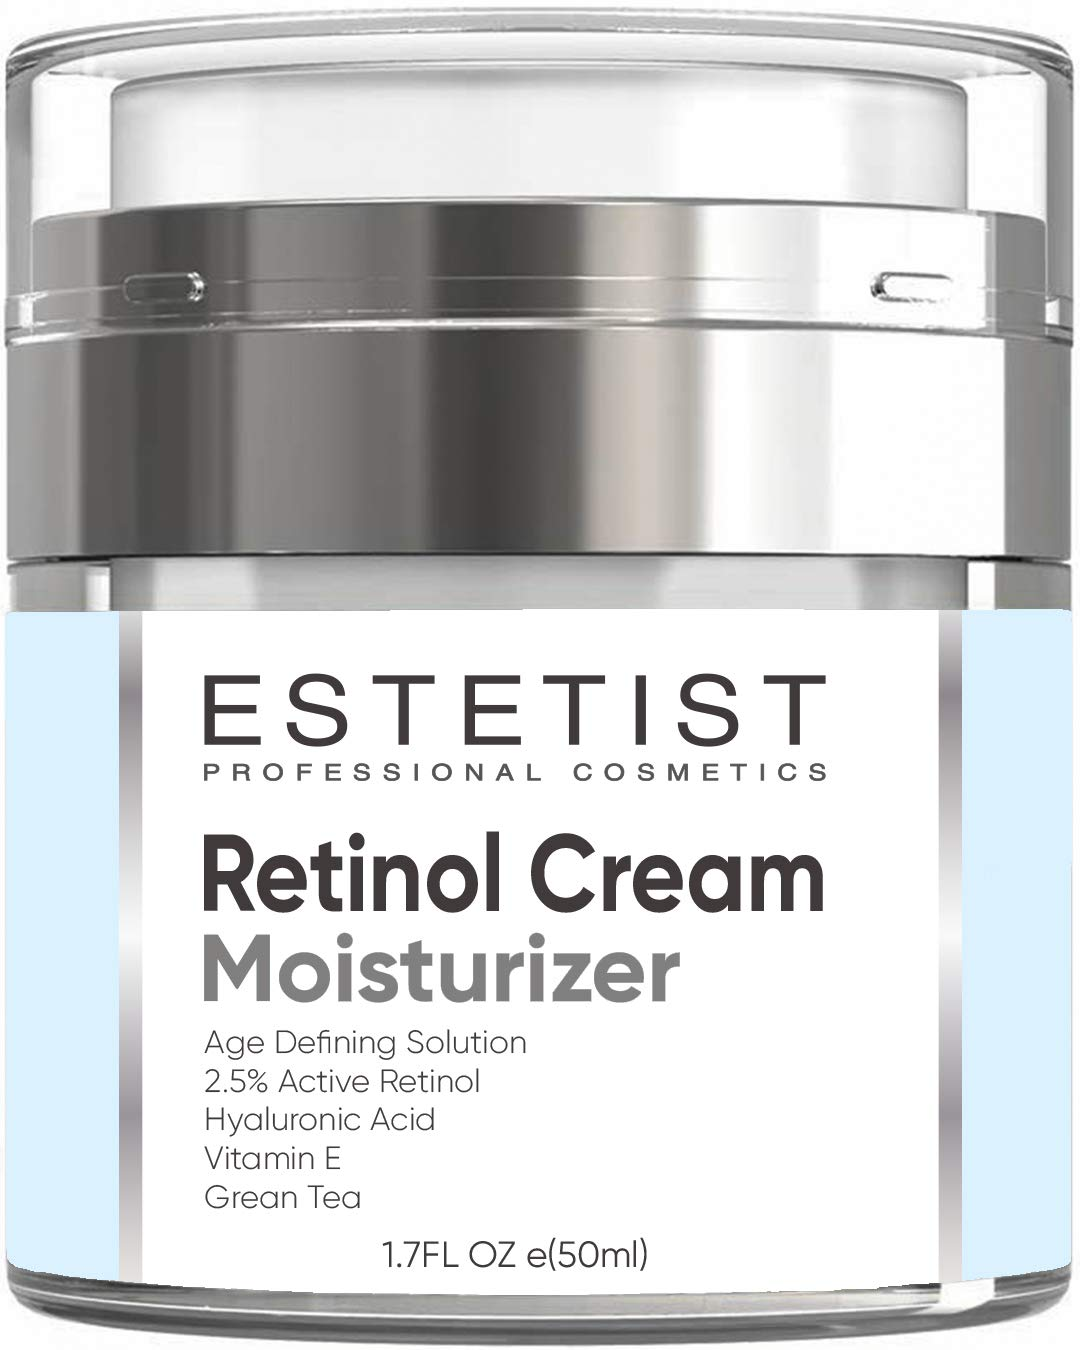 Face Moisturizer Retinol Cream for Day & Night with Hyaluronic Acid - Best Facial Age Defying Solution for Anti Aging, Wrinkles & Fine Lines to Restore Elasticity With SPF: Beauty